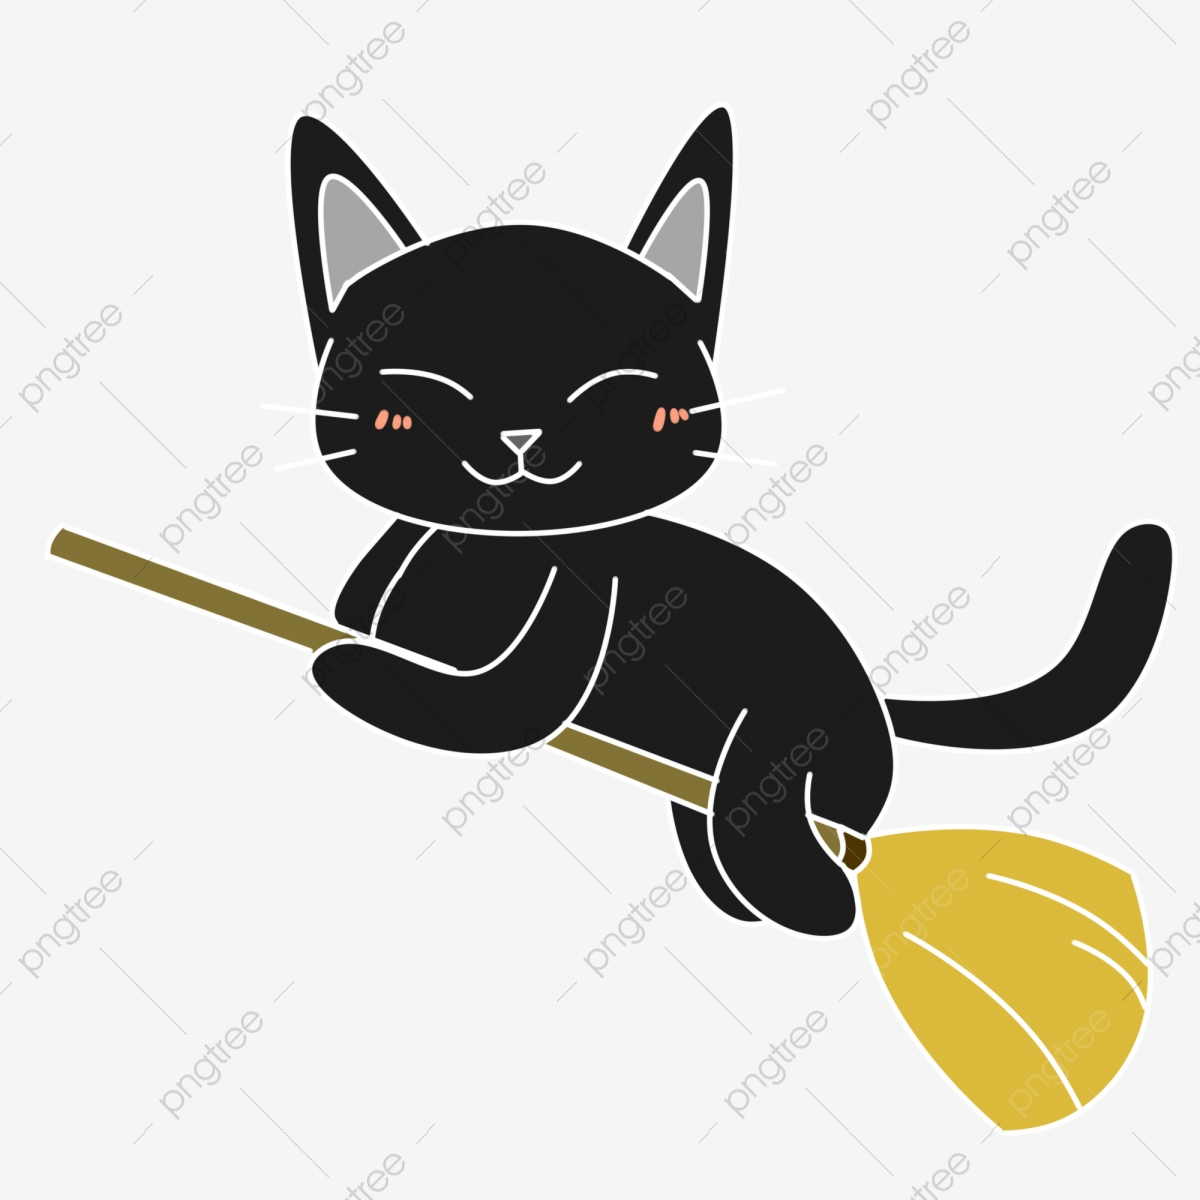 Cute Cartoon Fresh Halloween Black Cat Element Lovely Cartoon Halloween Png Transparent Clipart Image And Psd File For Free Download